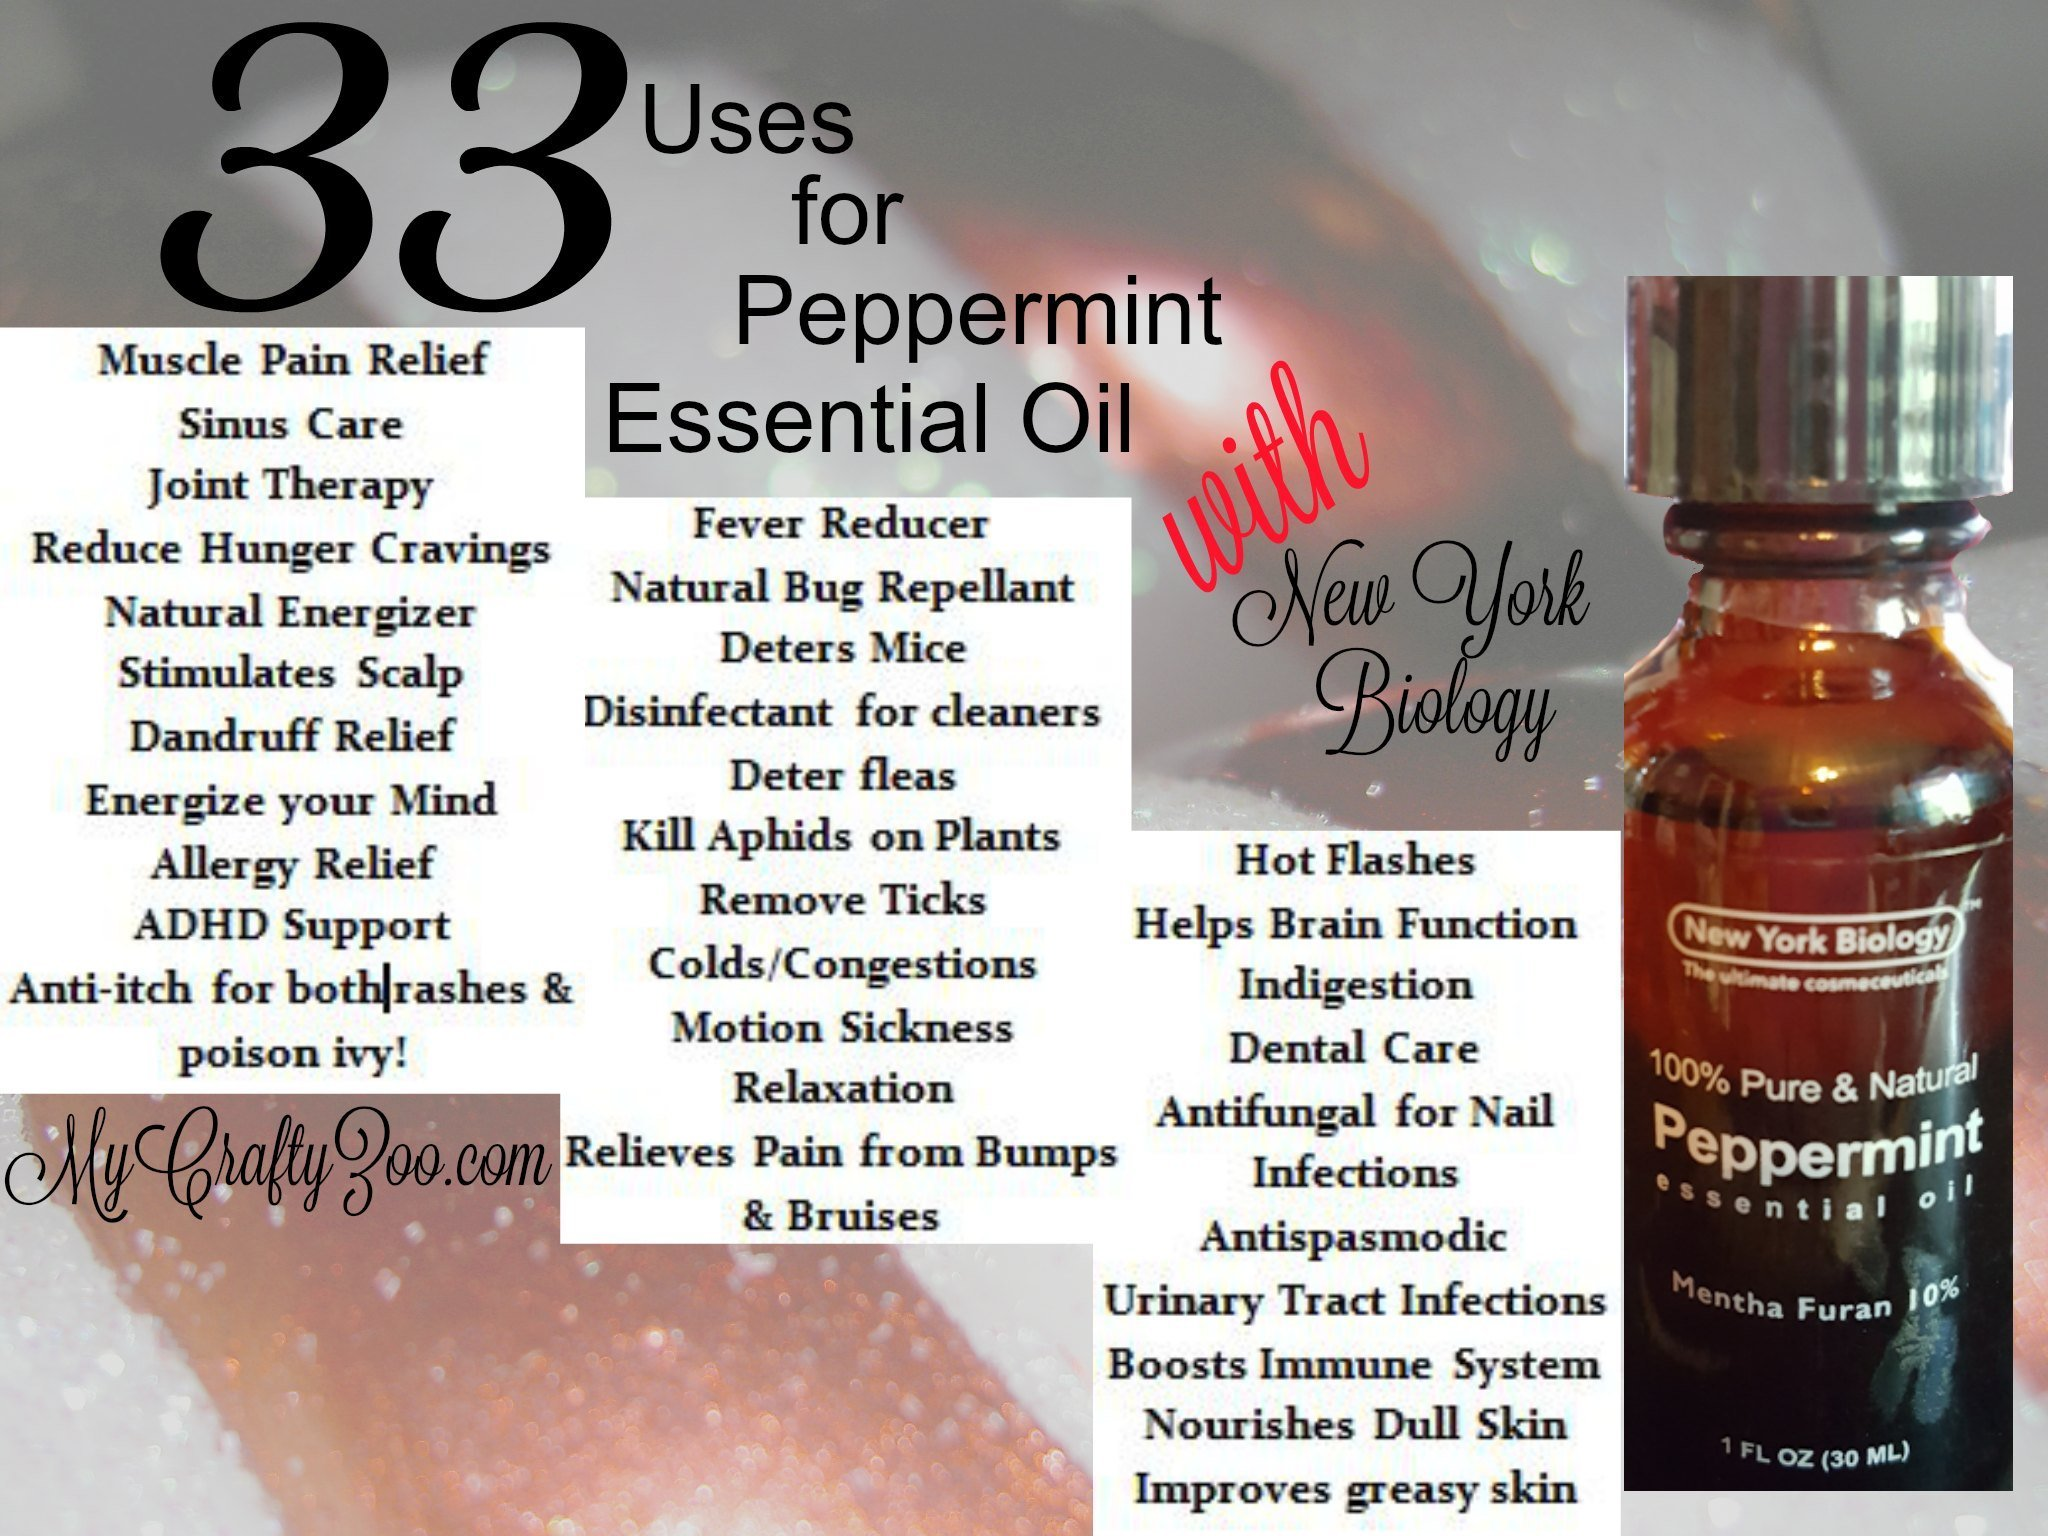 33 Uses for Peppermint Essential Oil with #NewYorkBiology